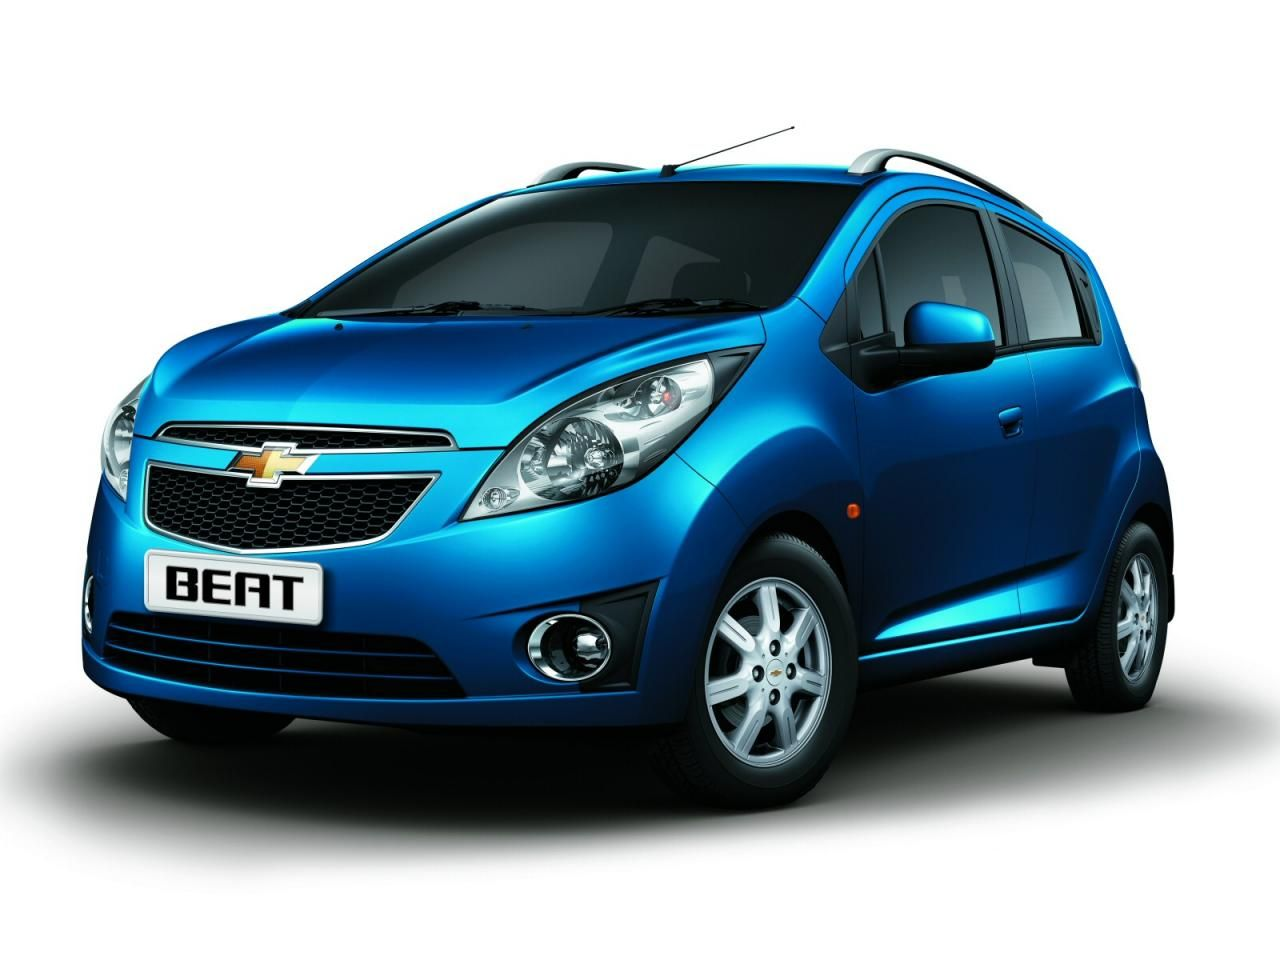 For Offers On Chevrolet Beat Car Contact Your Nearest Showroom